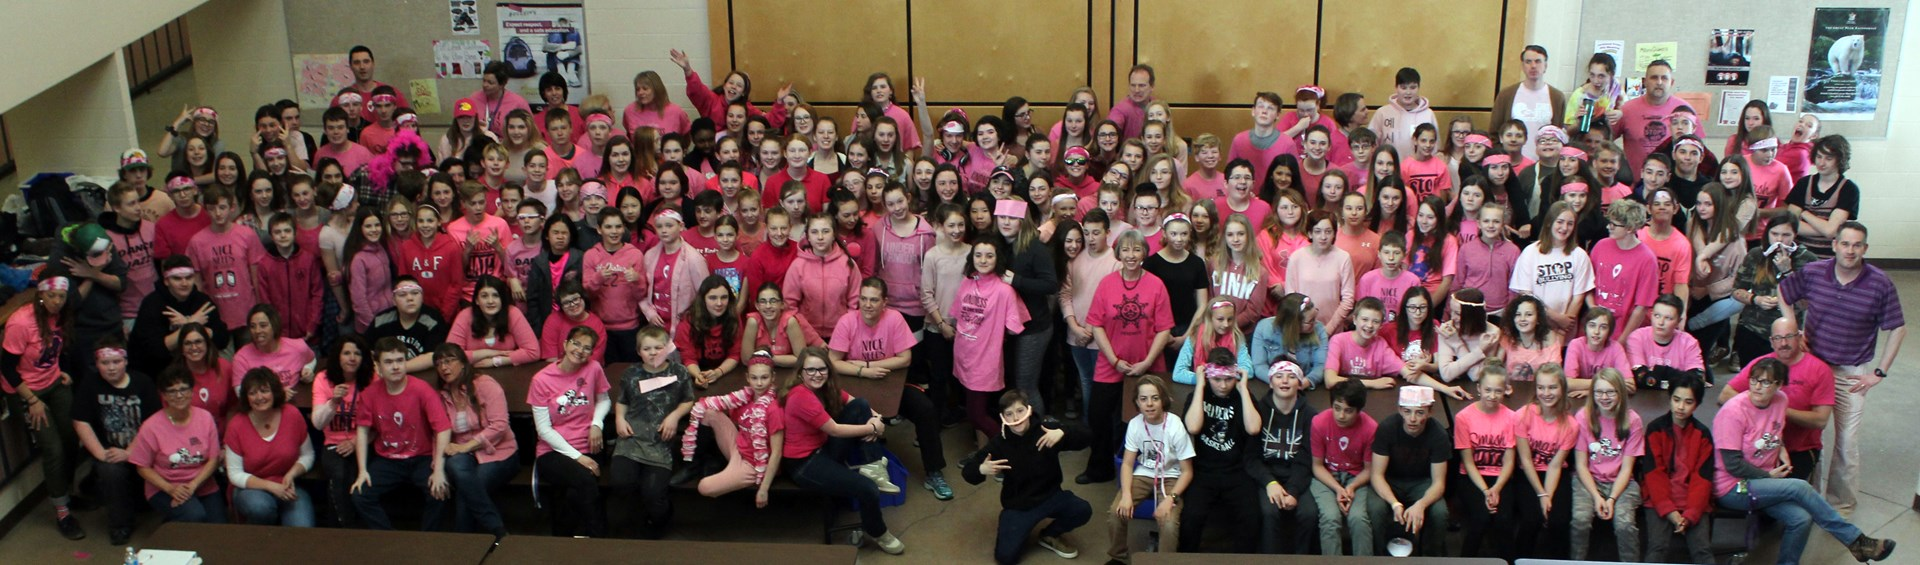 Pink Shirt Day at Parkland Middle School!